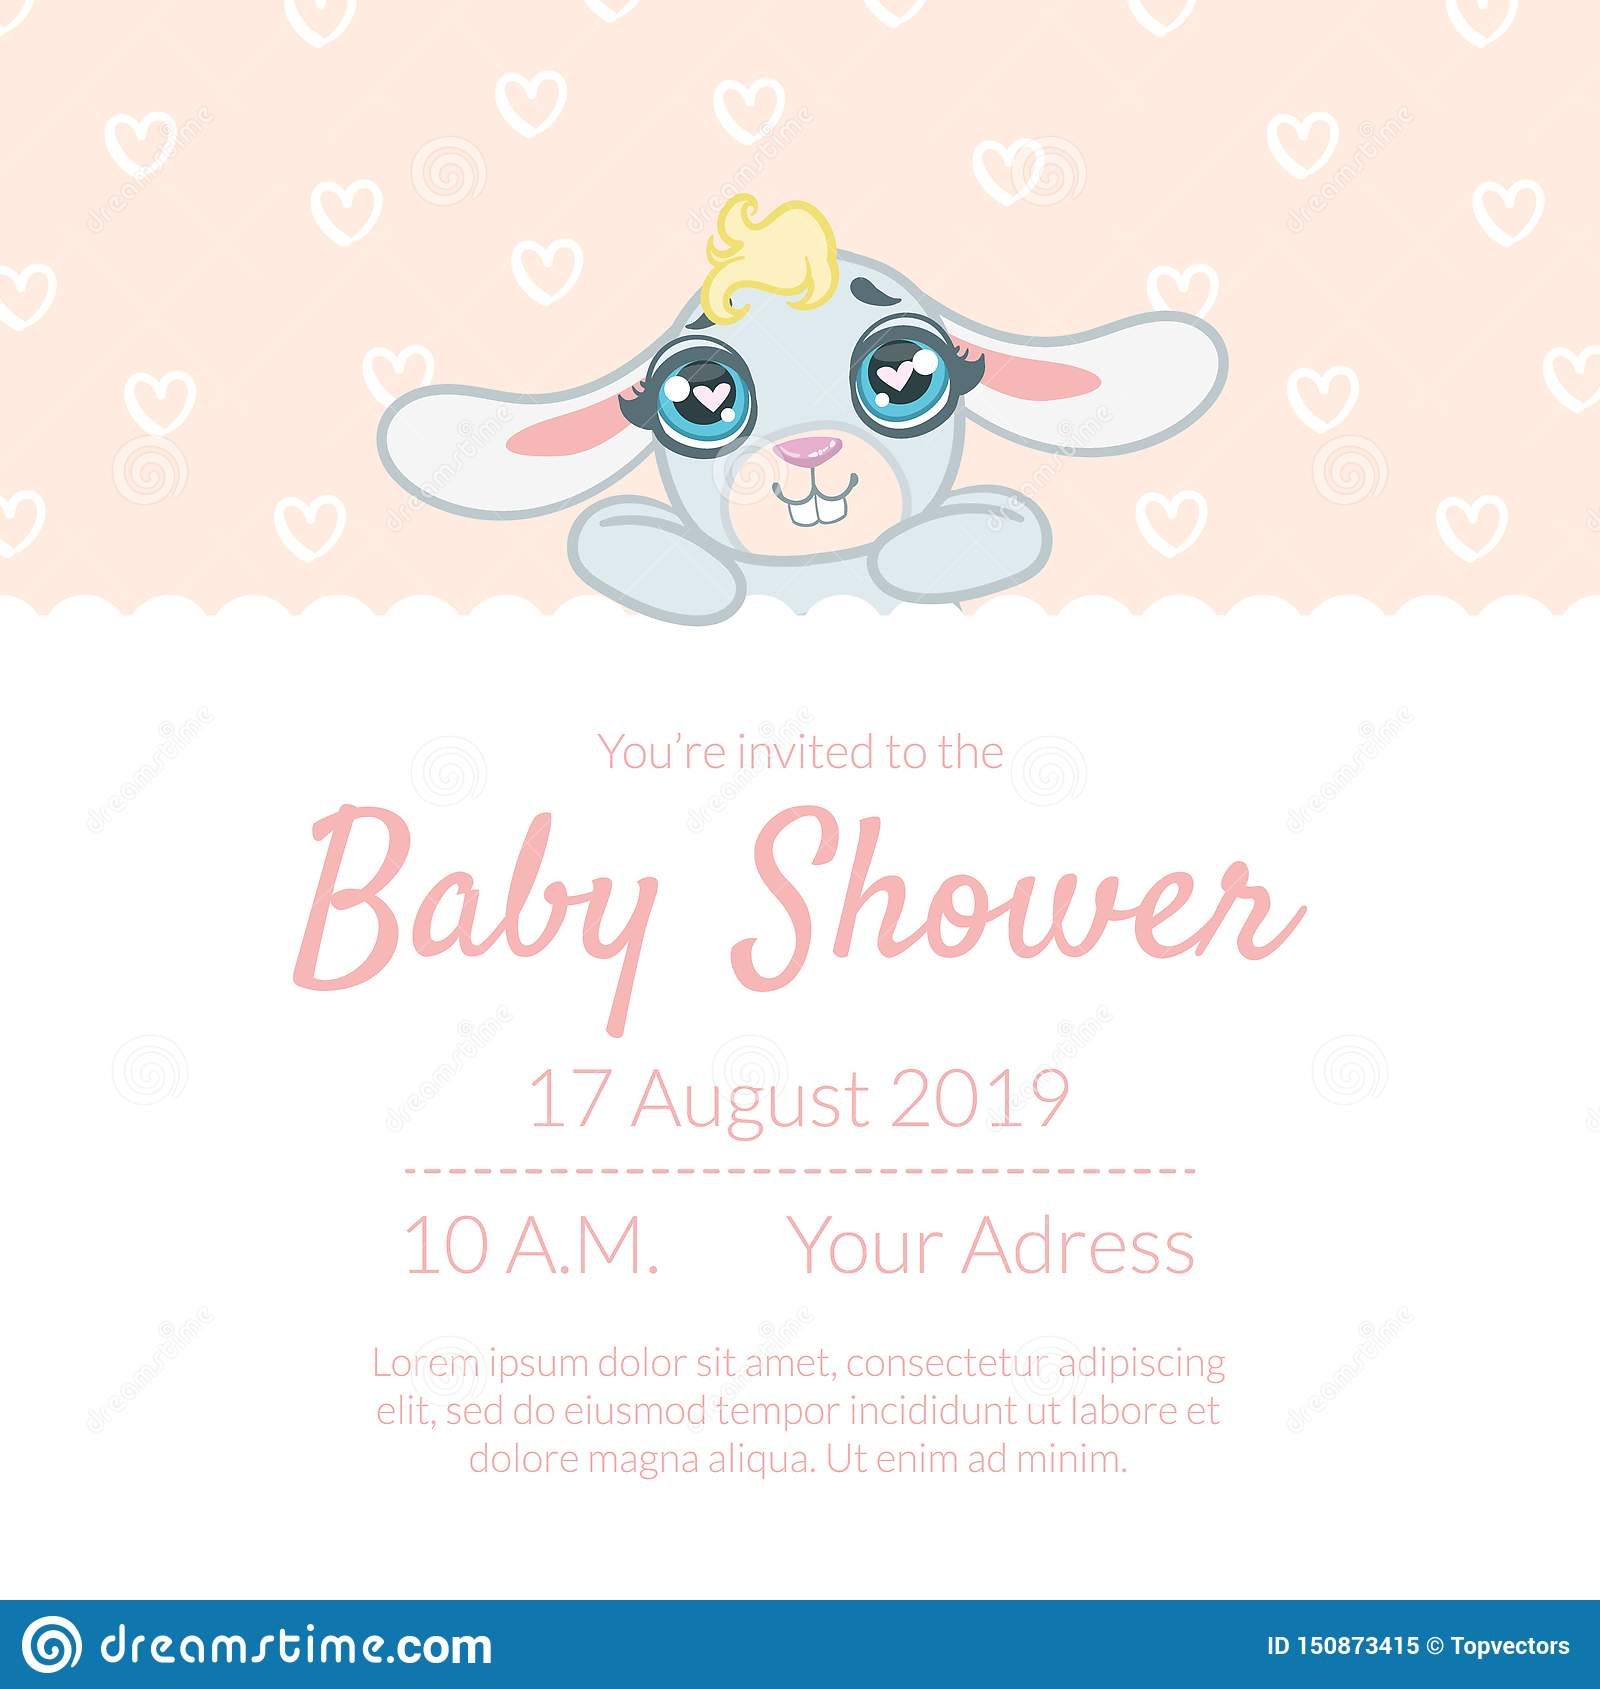 Cute Baby Shower Invitation Card Template With Place For